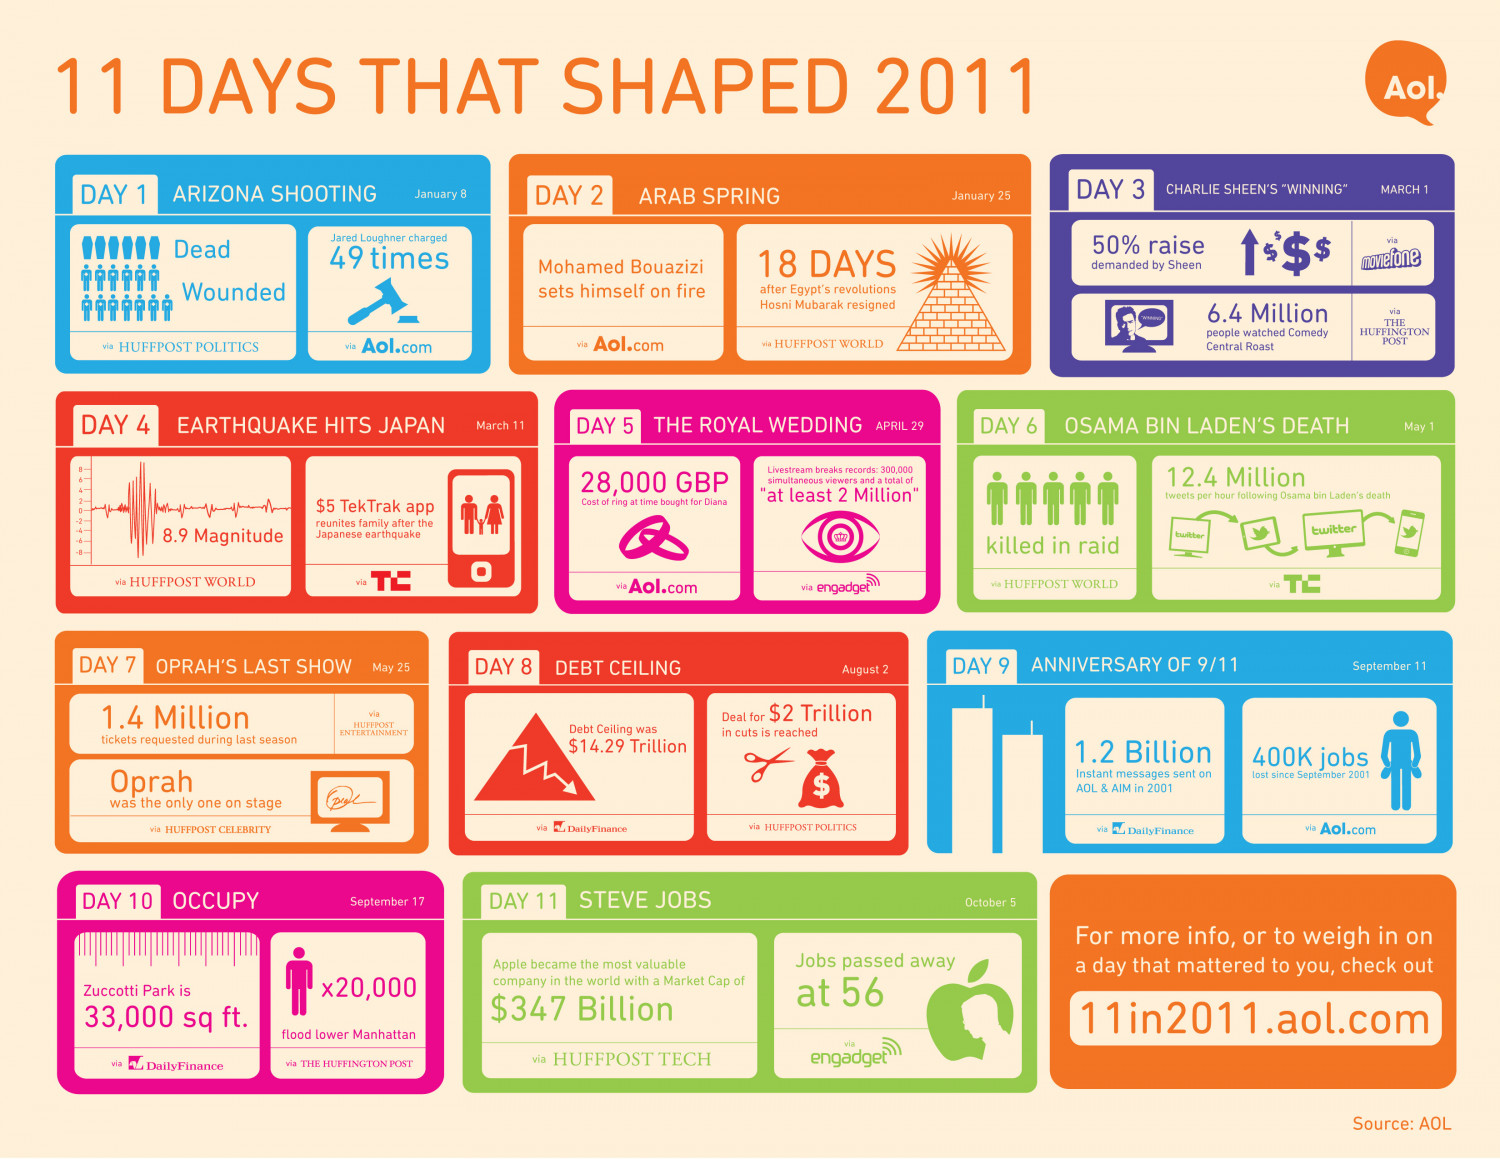 11 Days that Shaped 2011 Infographic